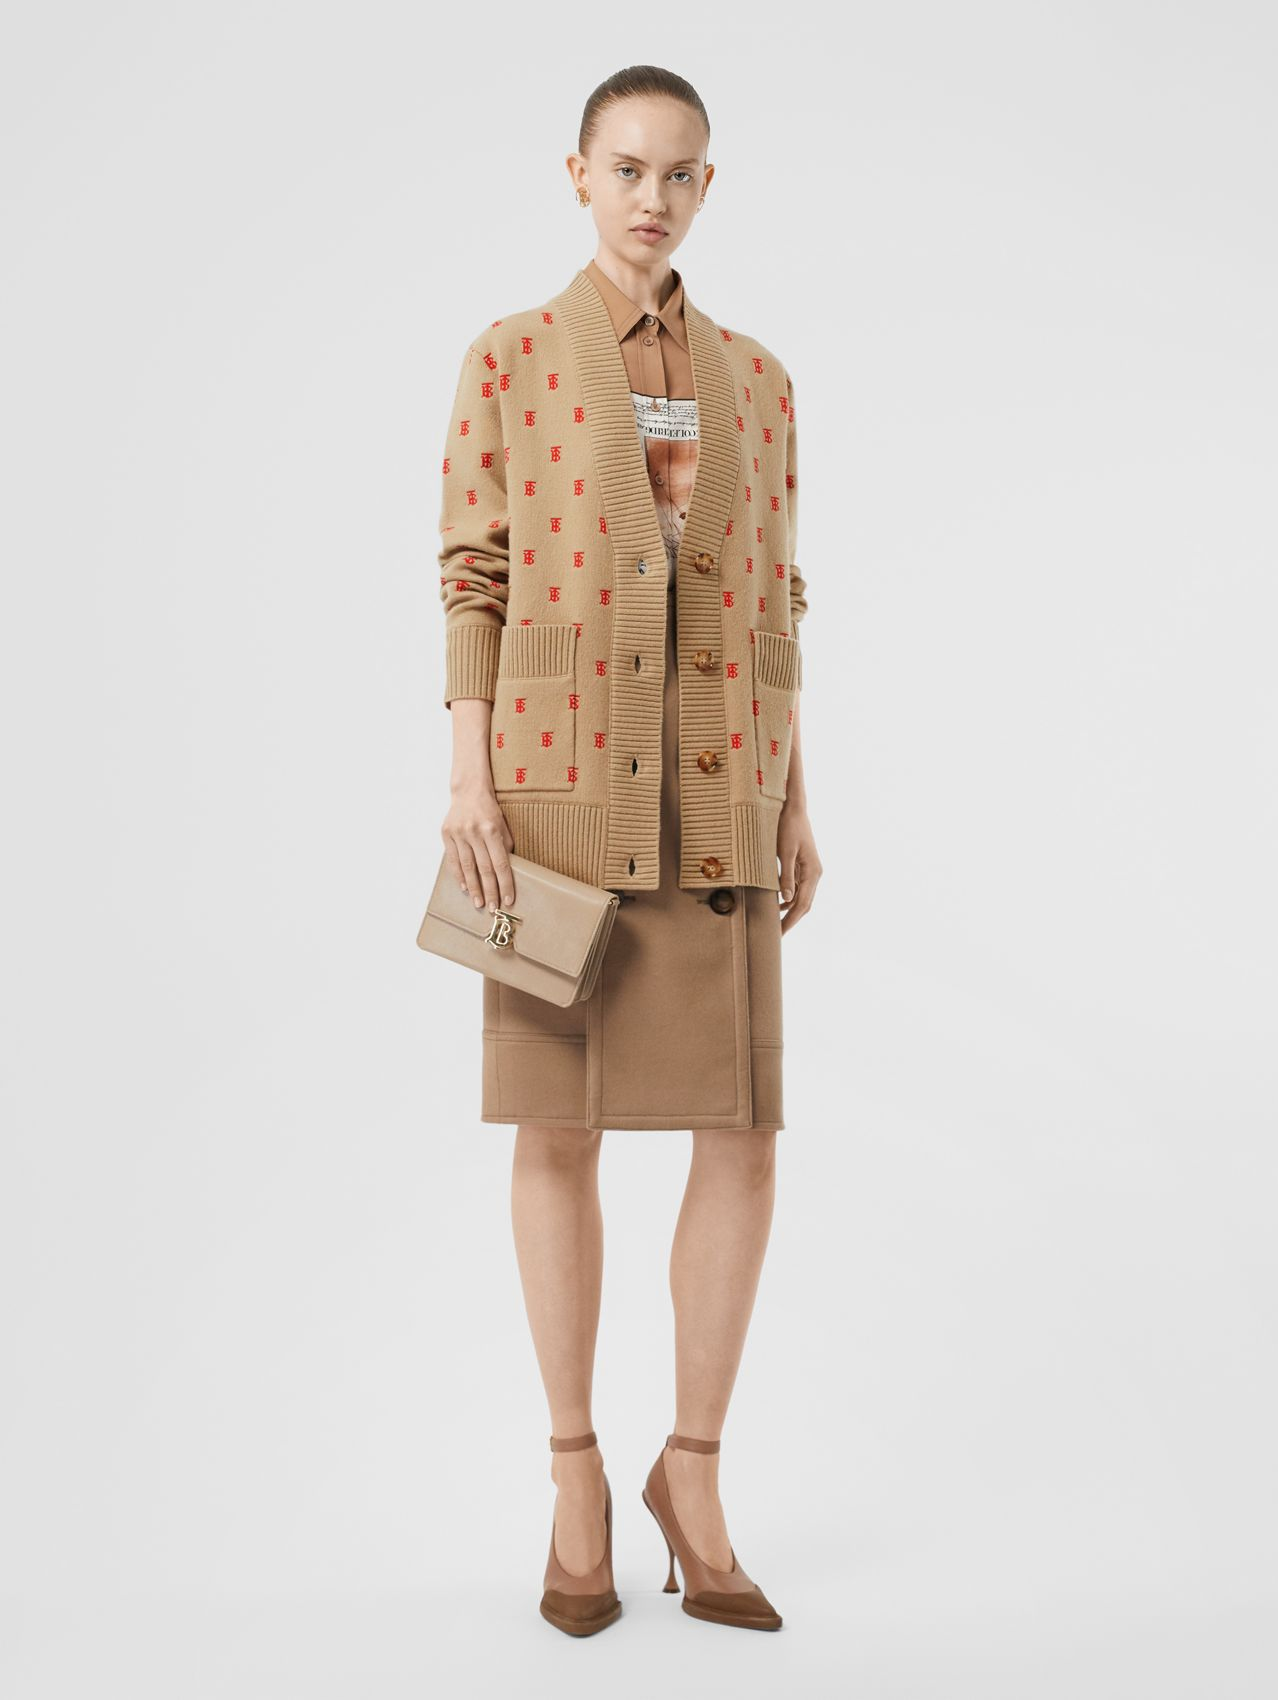 Monogram Wool Cashmere Blend Oversized Cardigan in Archive Beige